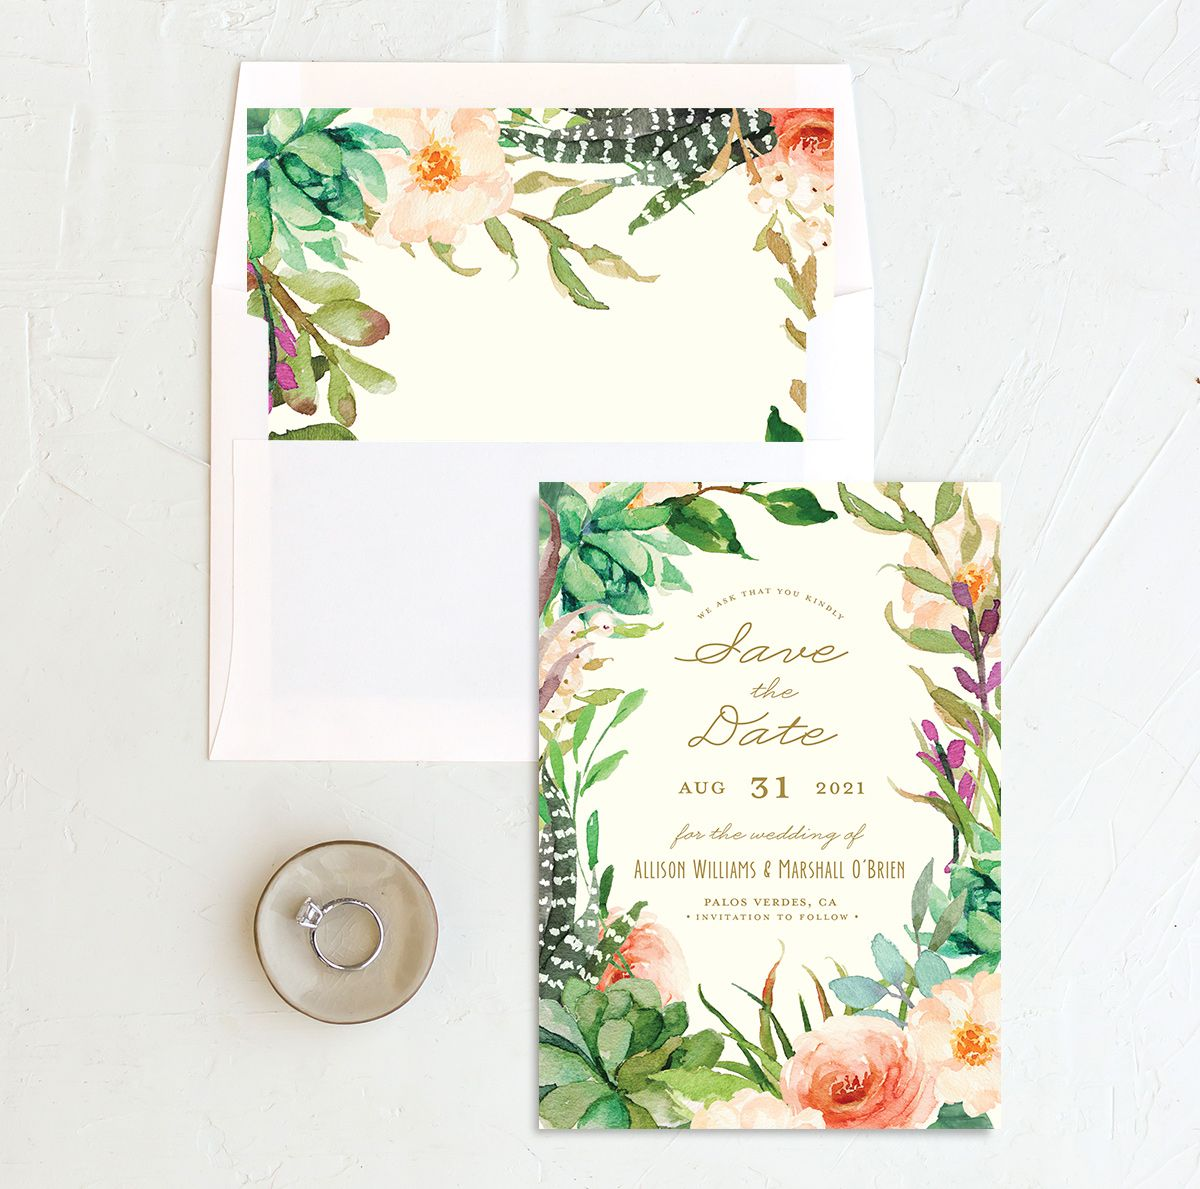 Elegant Oasis Save the Dates with liner